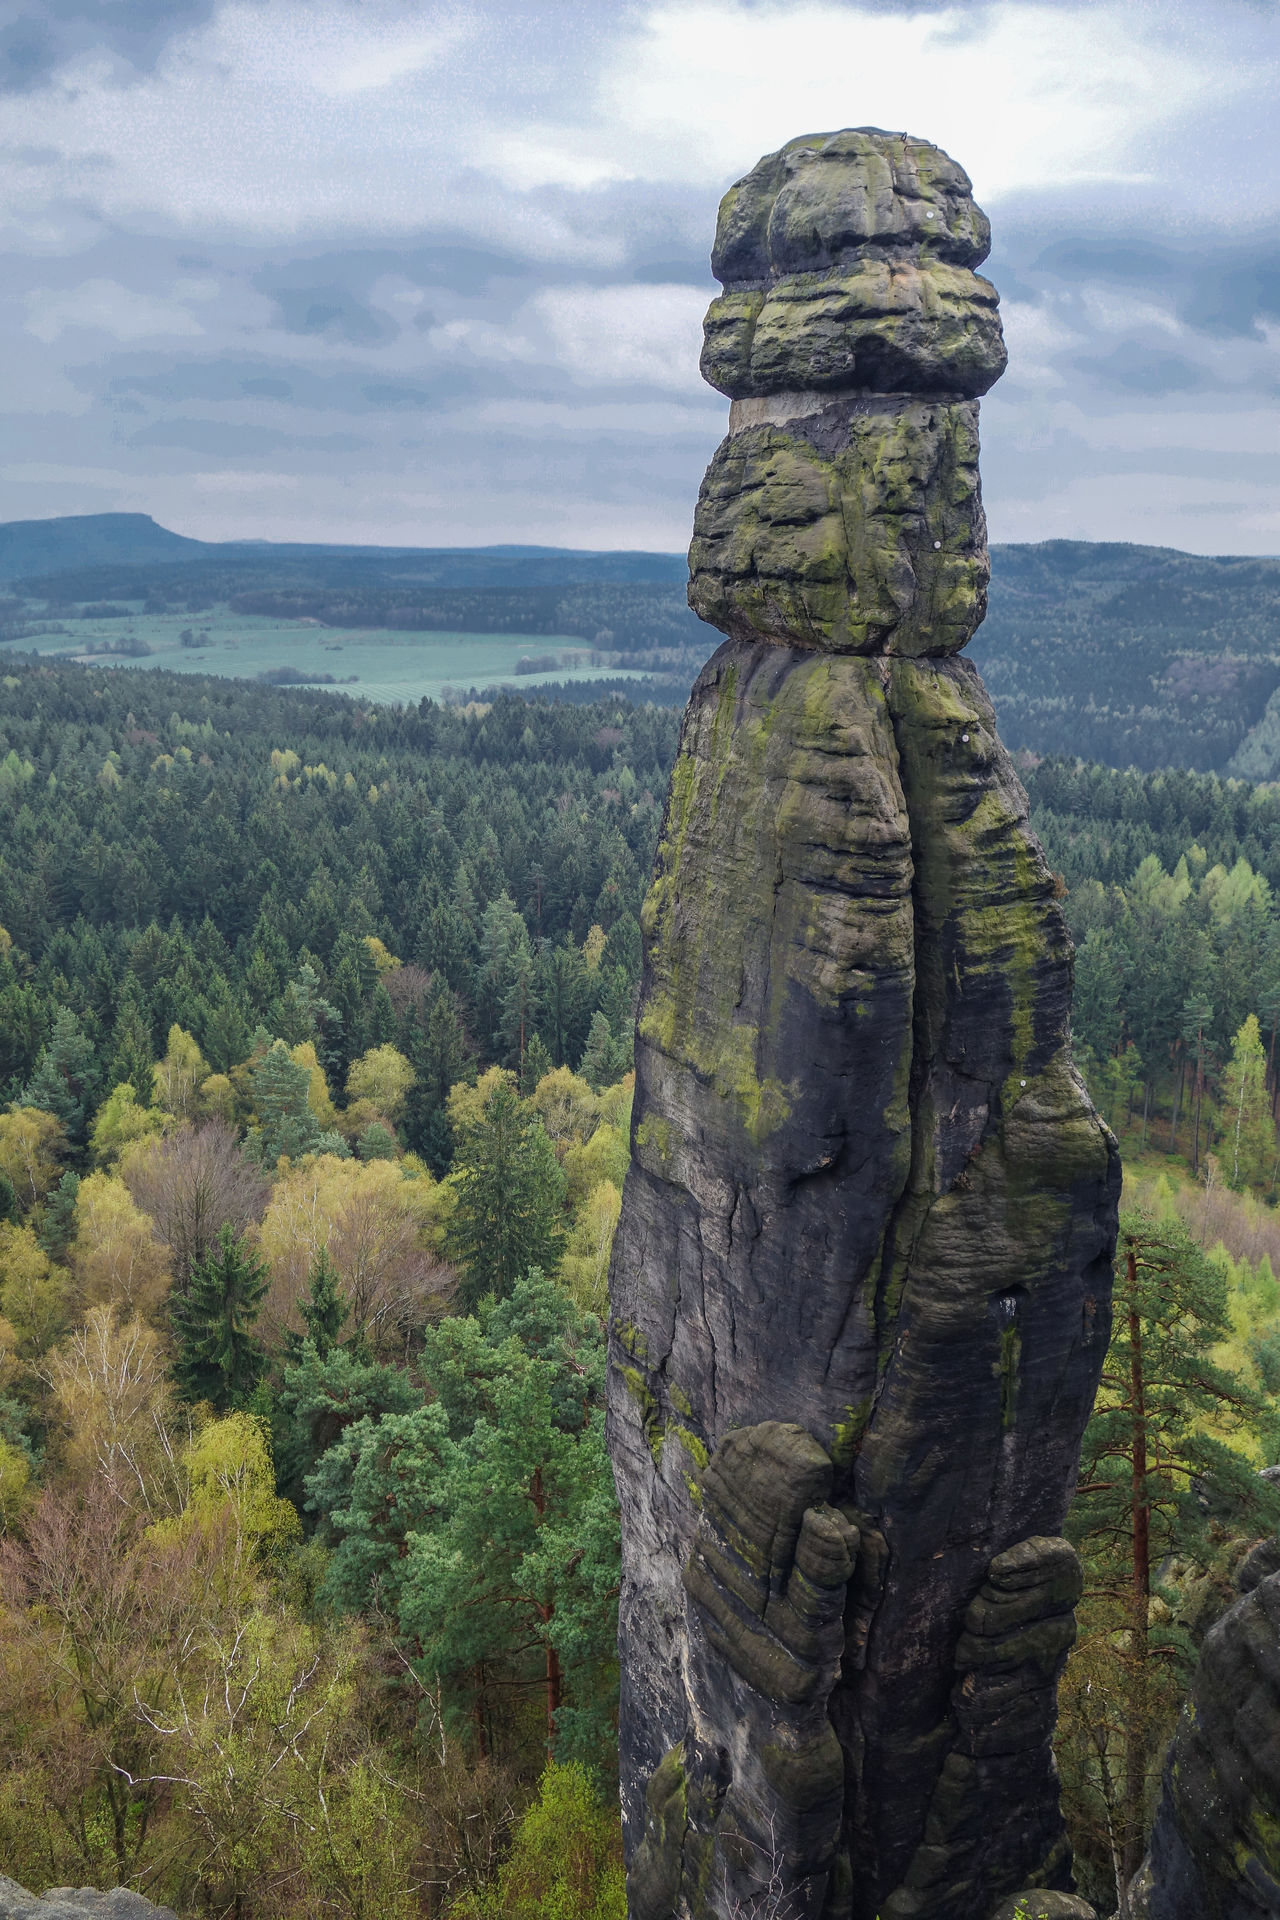 Barbarine Beauty In Nature Cloud - Sky Day Gernany Mountain National Park Nature No People Outdoors Rock - Object Saxon Switzerland Sculpture Sky Statue Sächsische Schweiz Tree